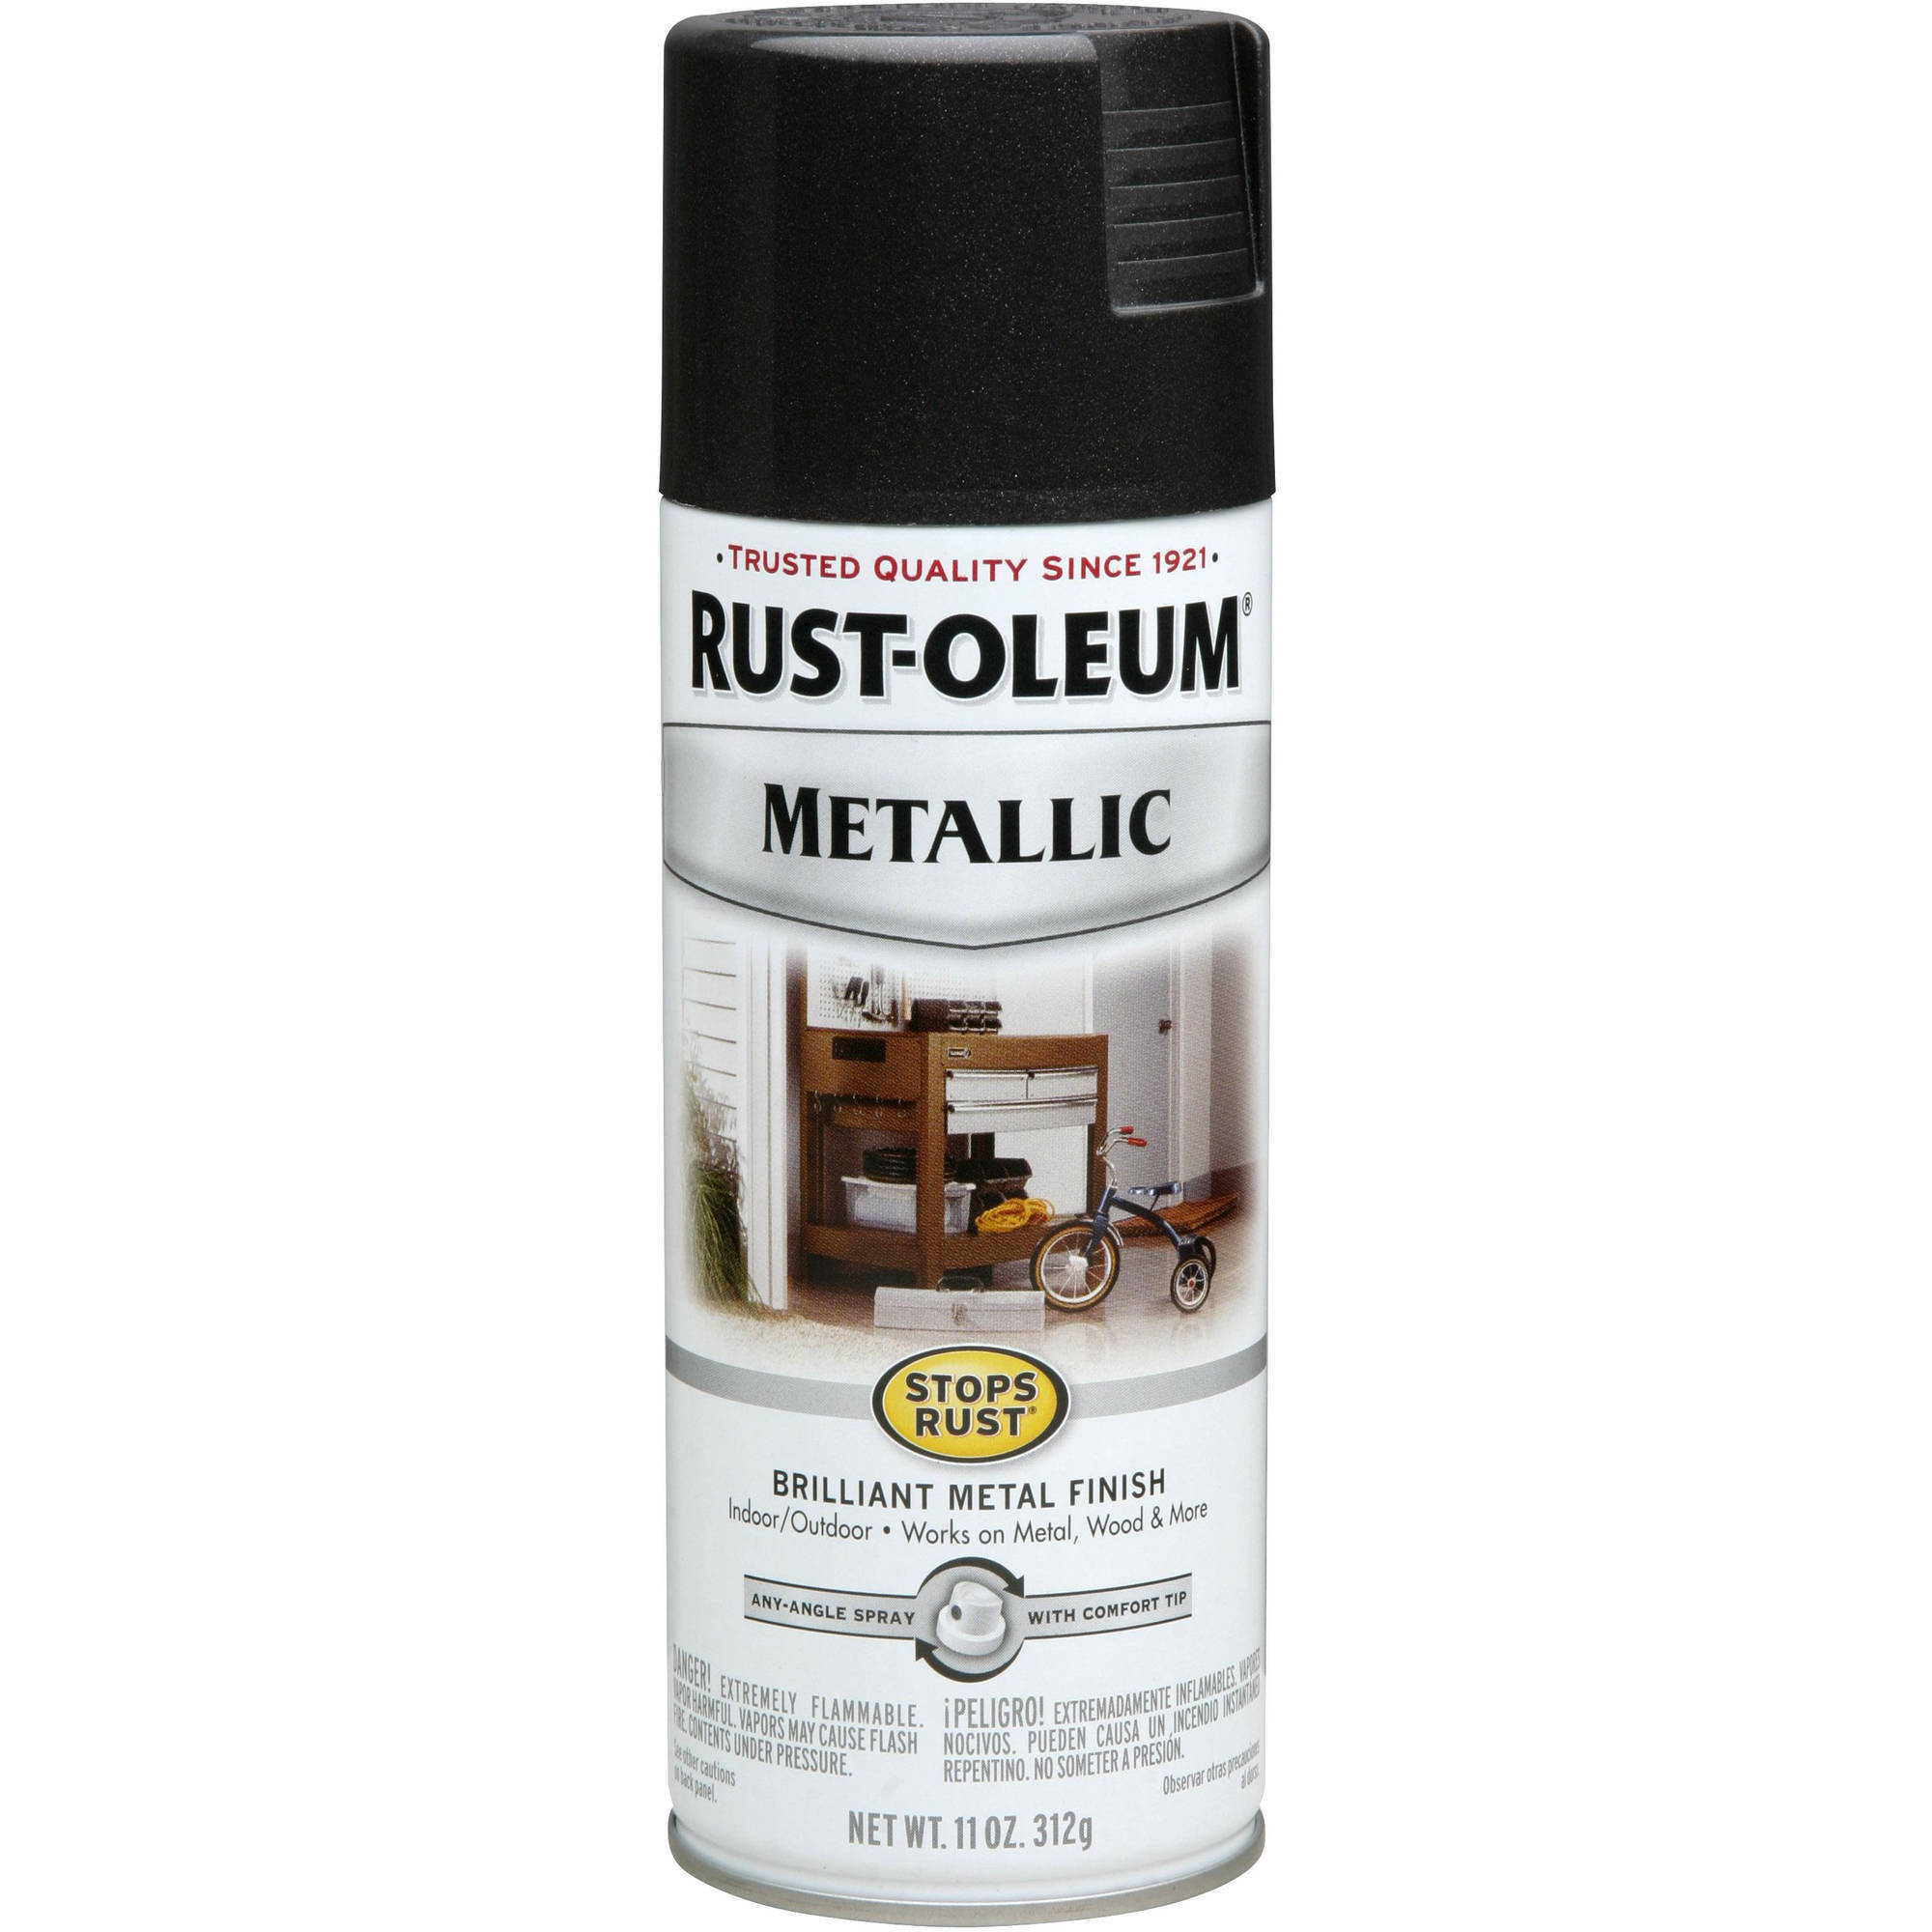 Rust-Oleum Stops Rust Black Night Metallic Brilliant Metal Finish Spray, 11 oz